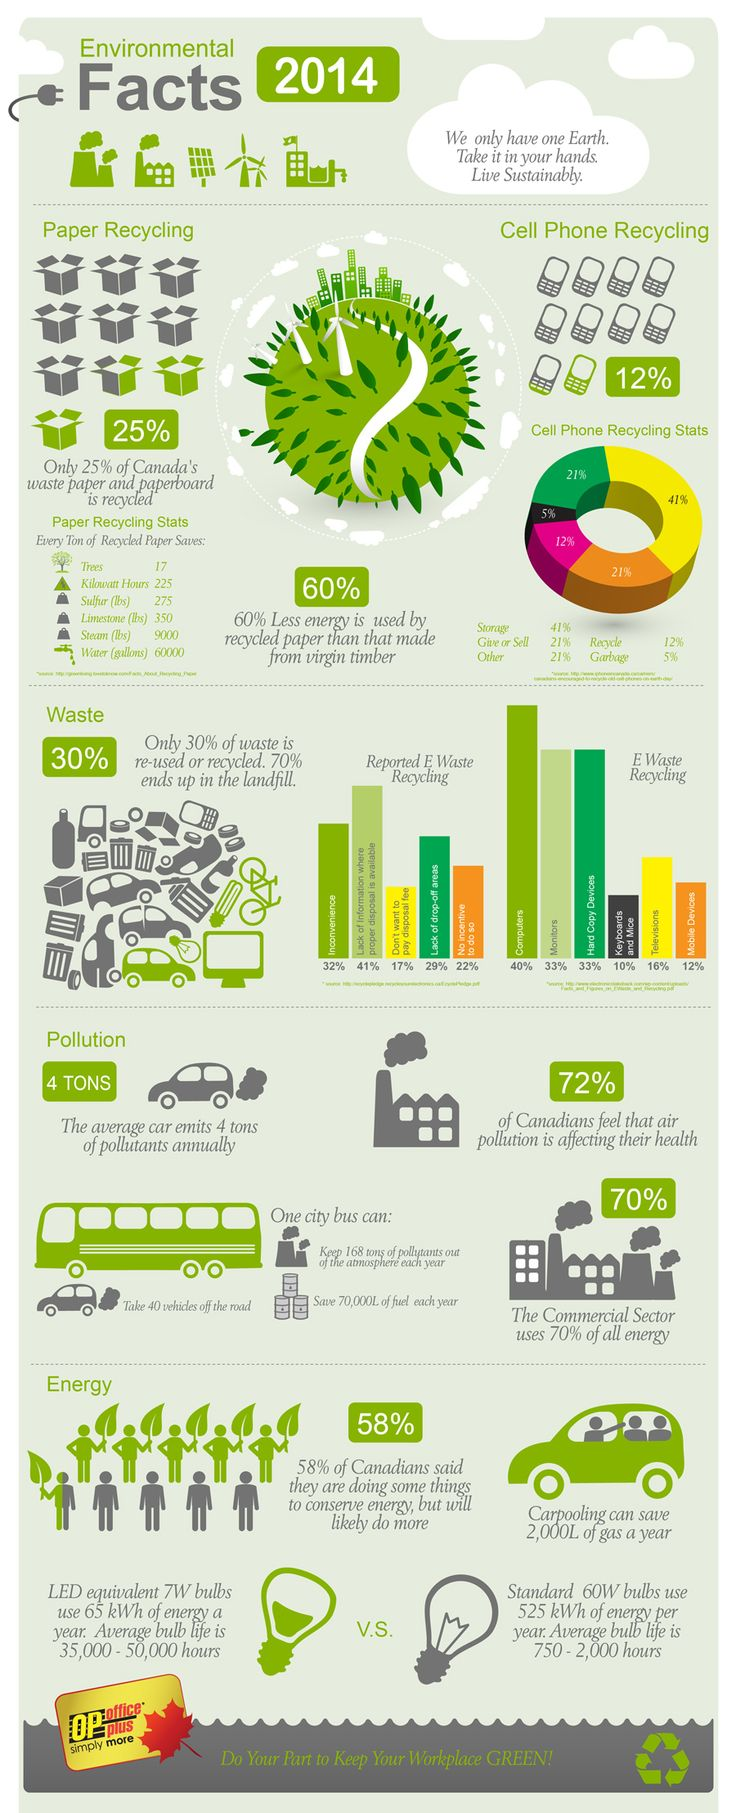 1000 images about go green on pinterest recycling for Facts about going green